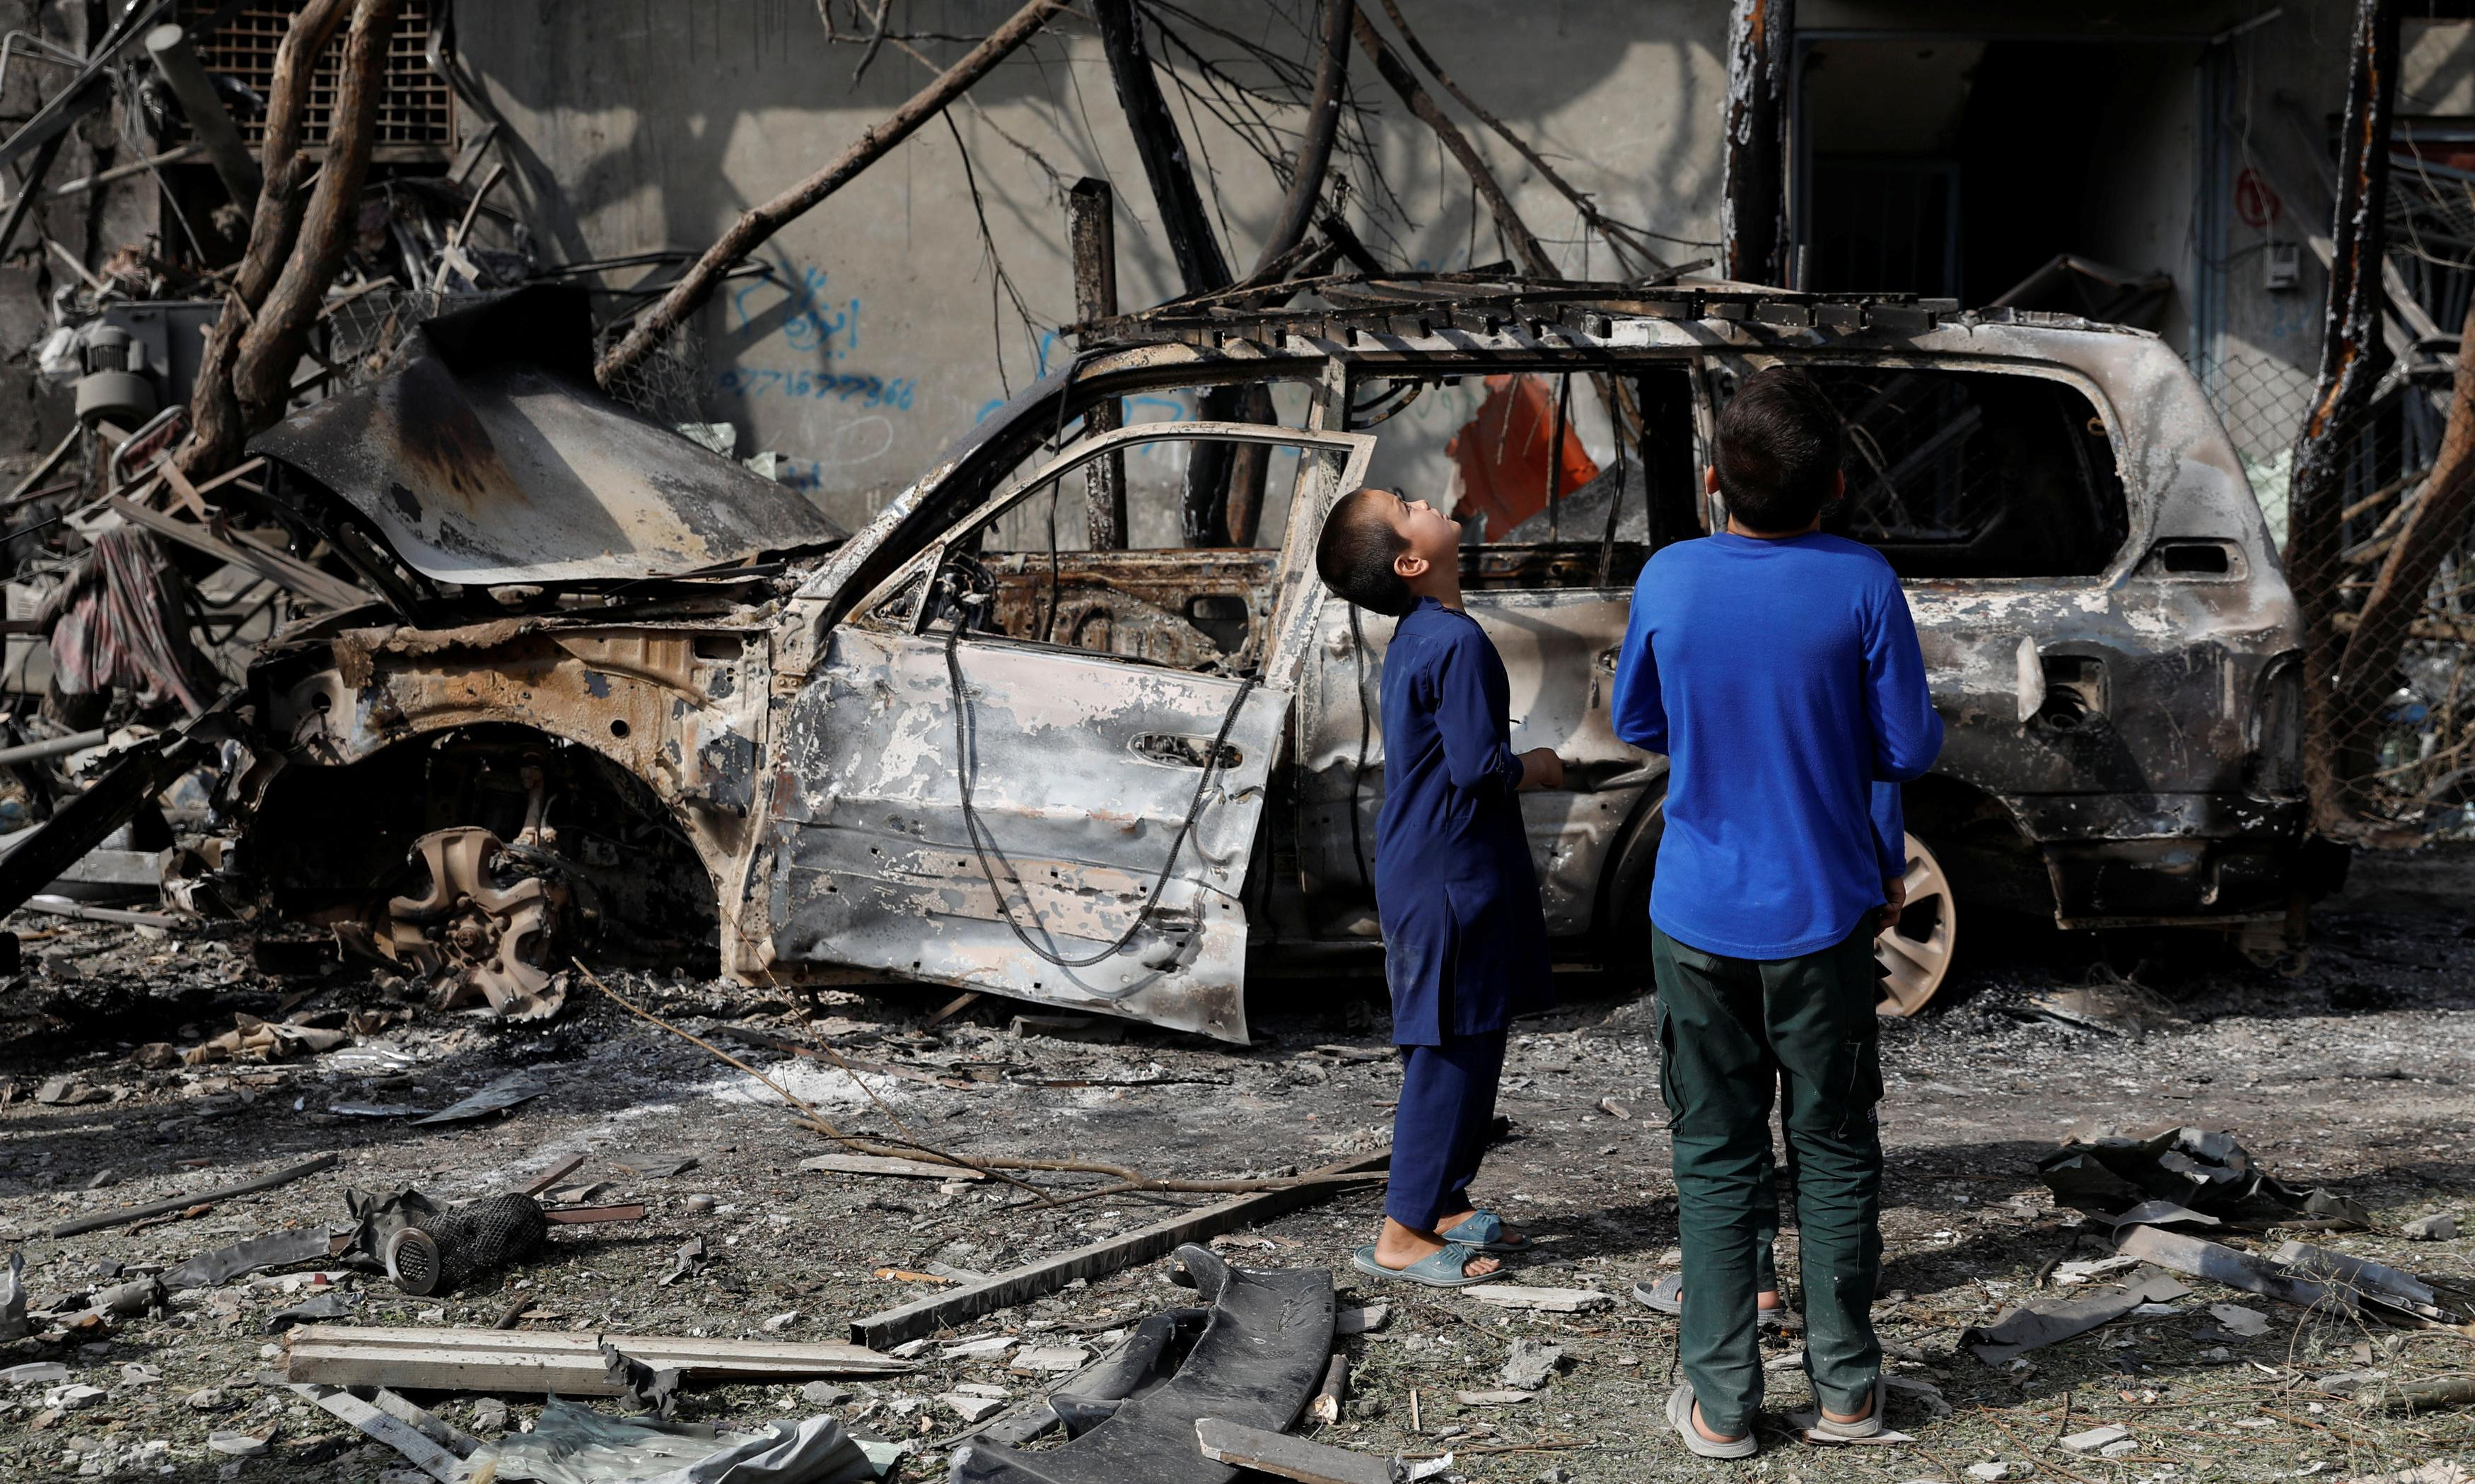 The Guardian view on Afghanistan: war and peace talks